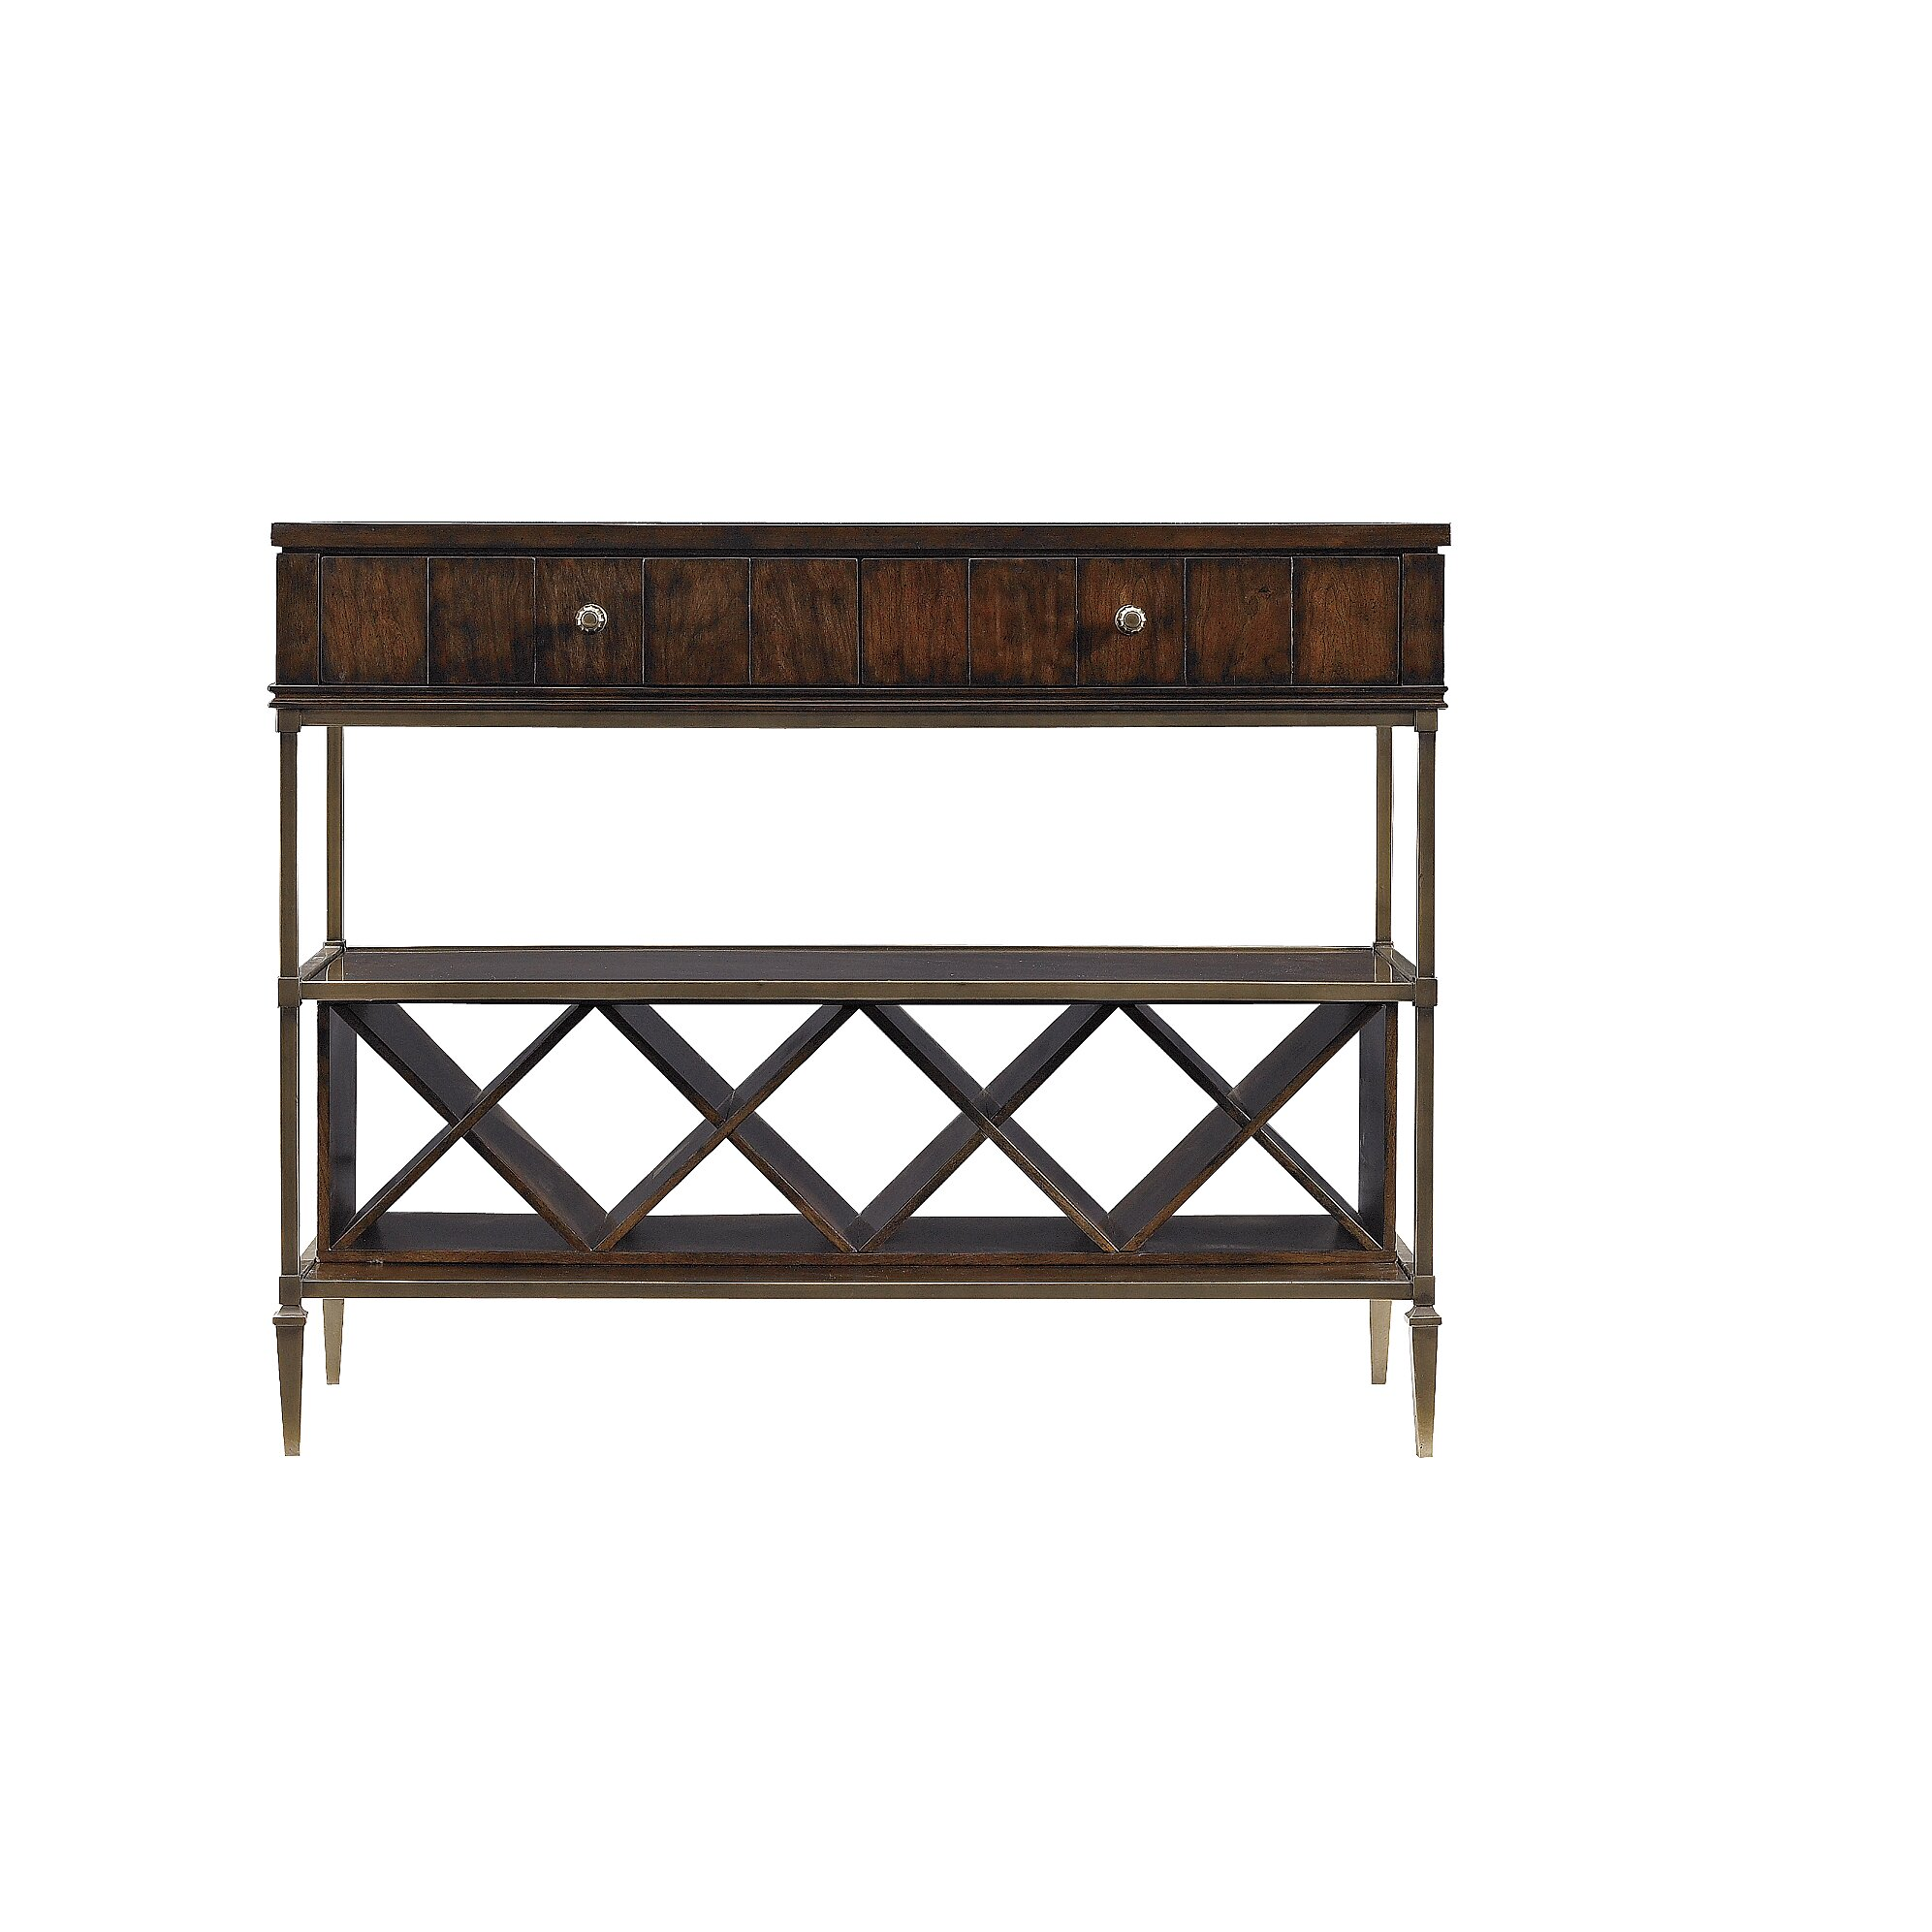 Stanley avalon heights empire serving console table wayfair for Wayfair shop furniture